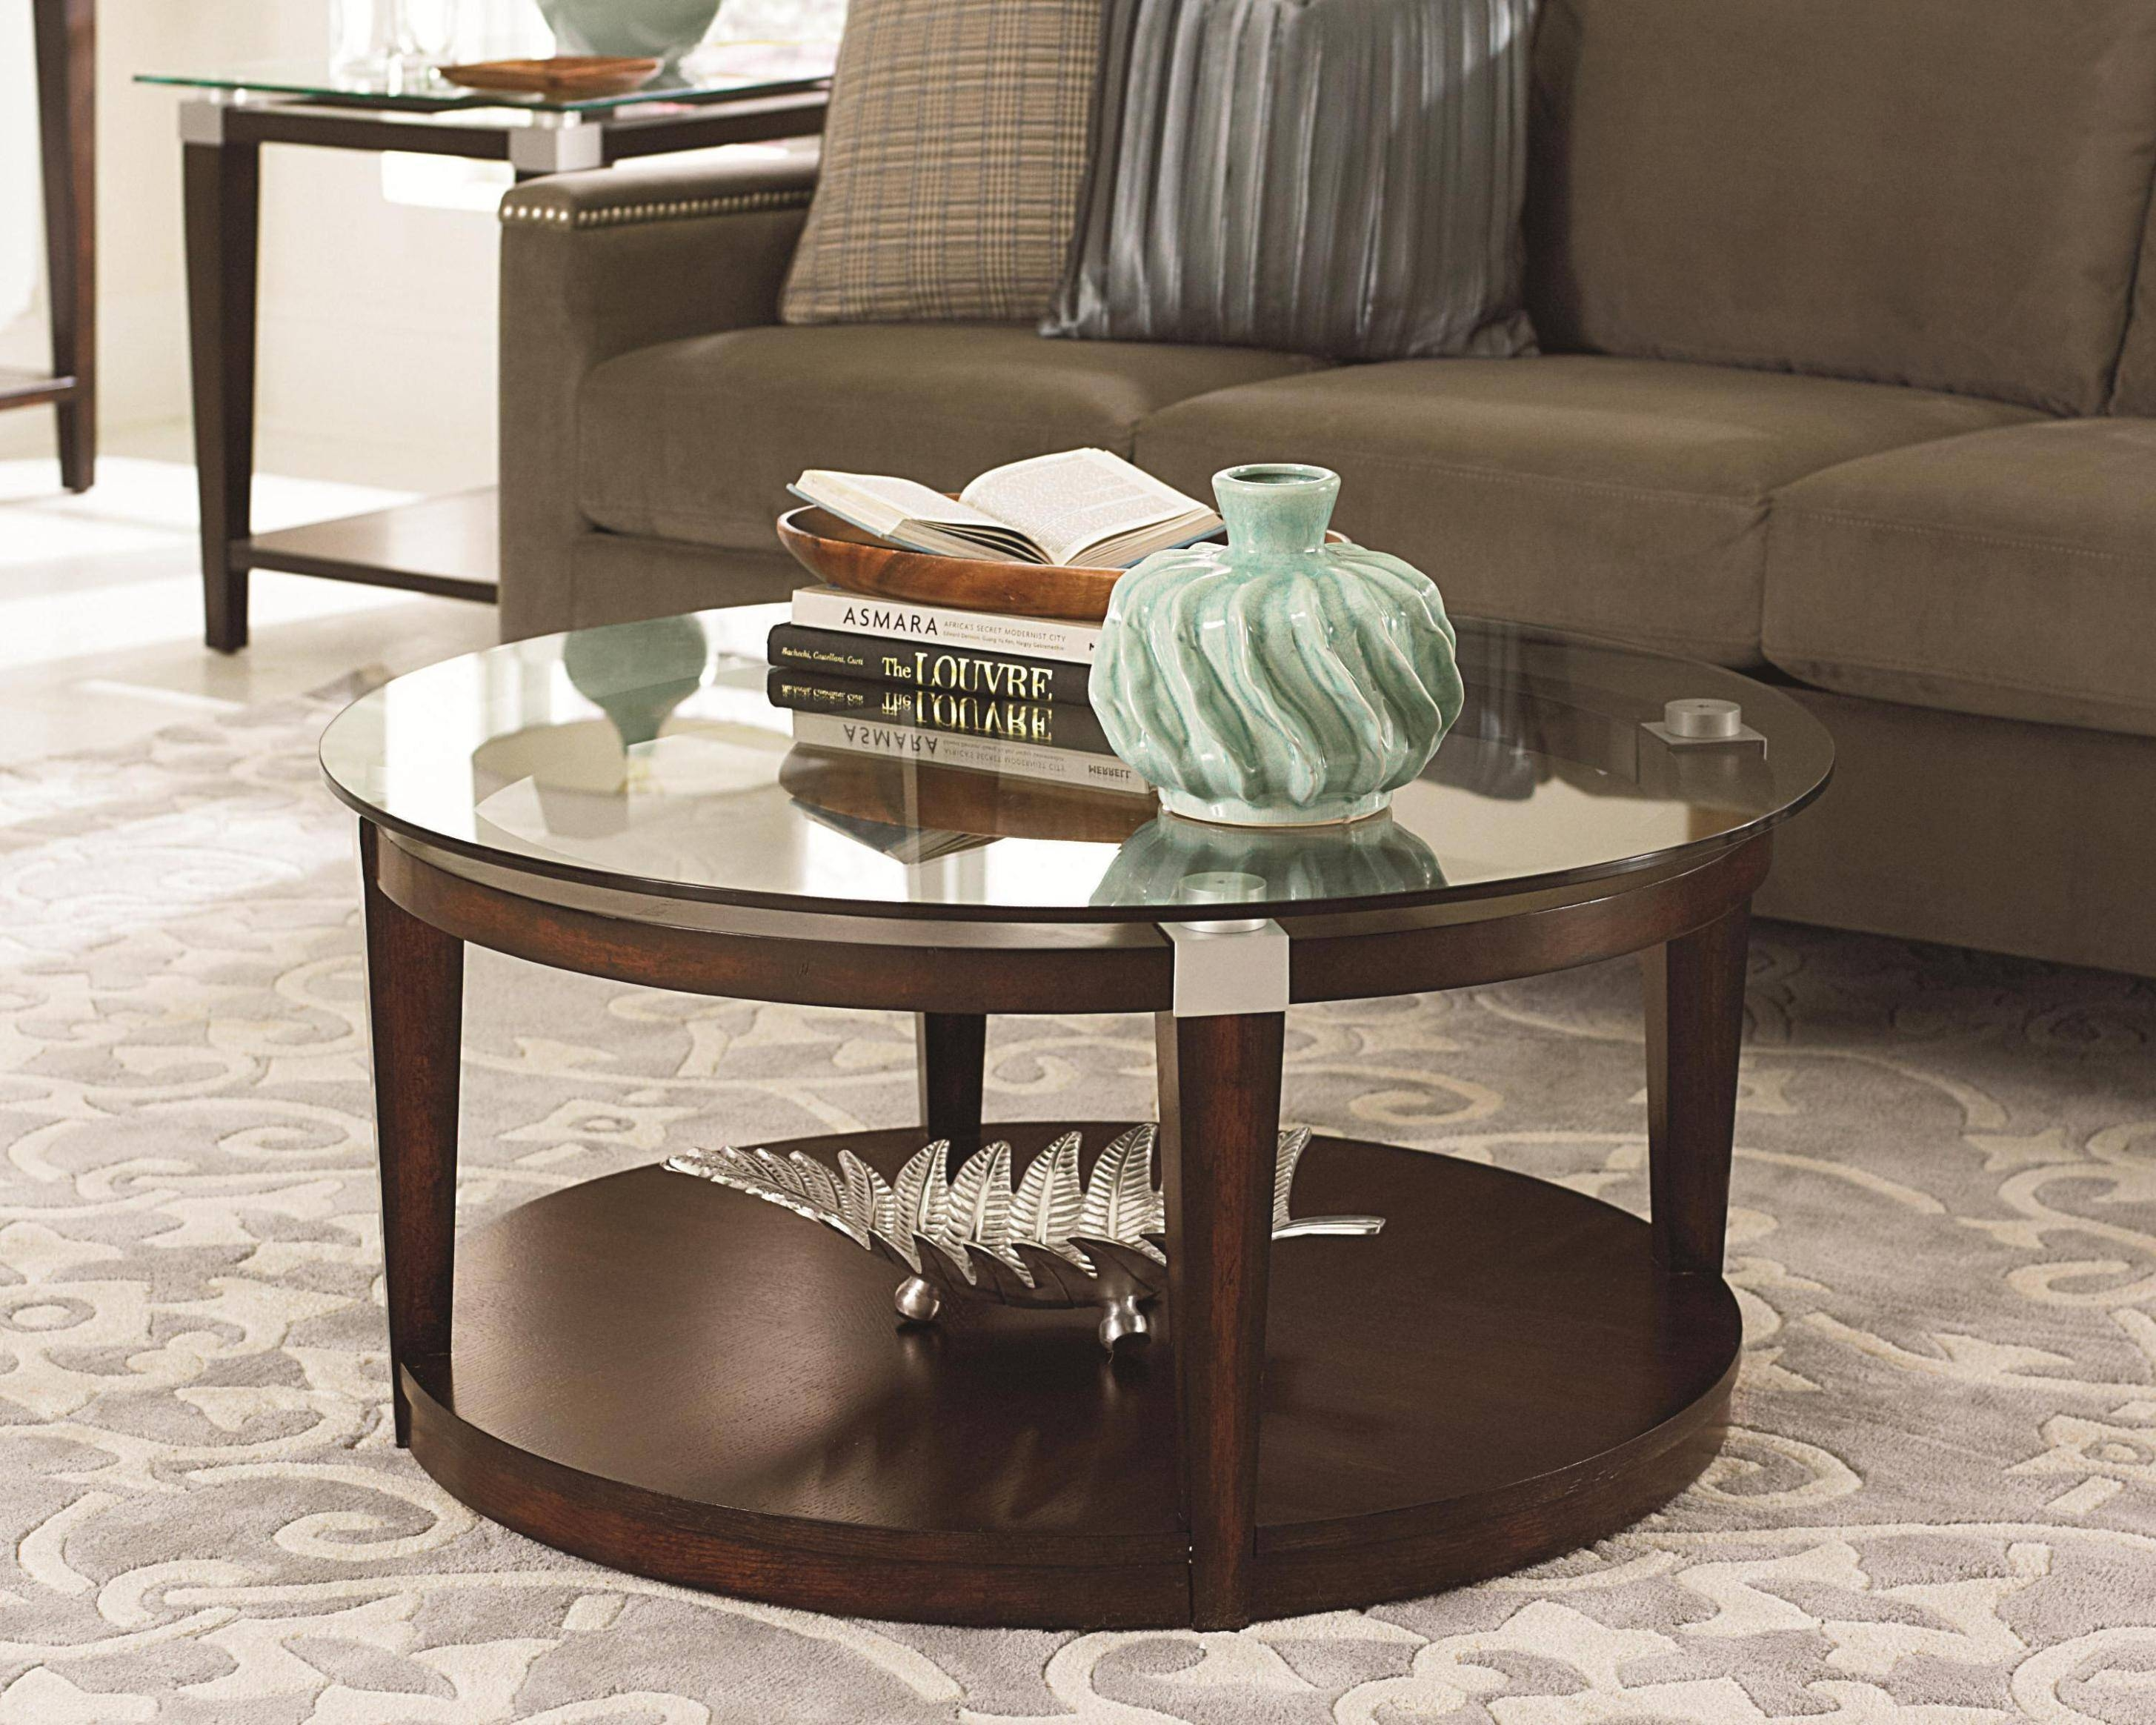 Coffee Table: Interesting Round Glass Coffee Table Design Ideas with regard to Round Glass And Wood Coffee Tables (Image 3 of 30)